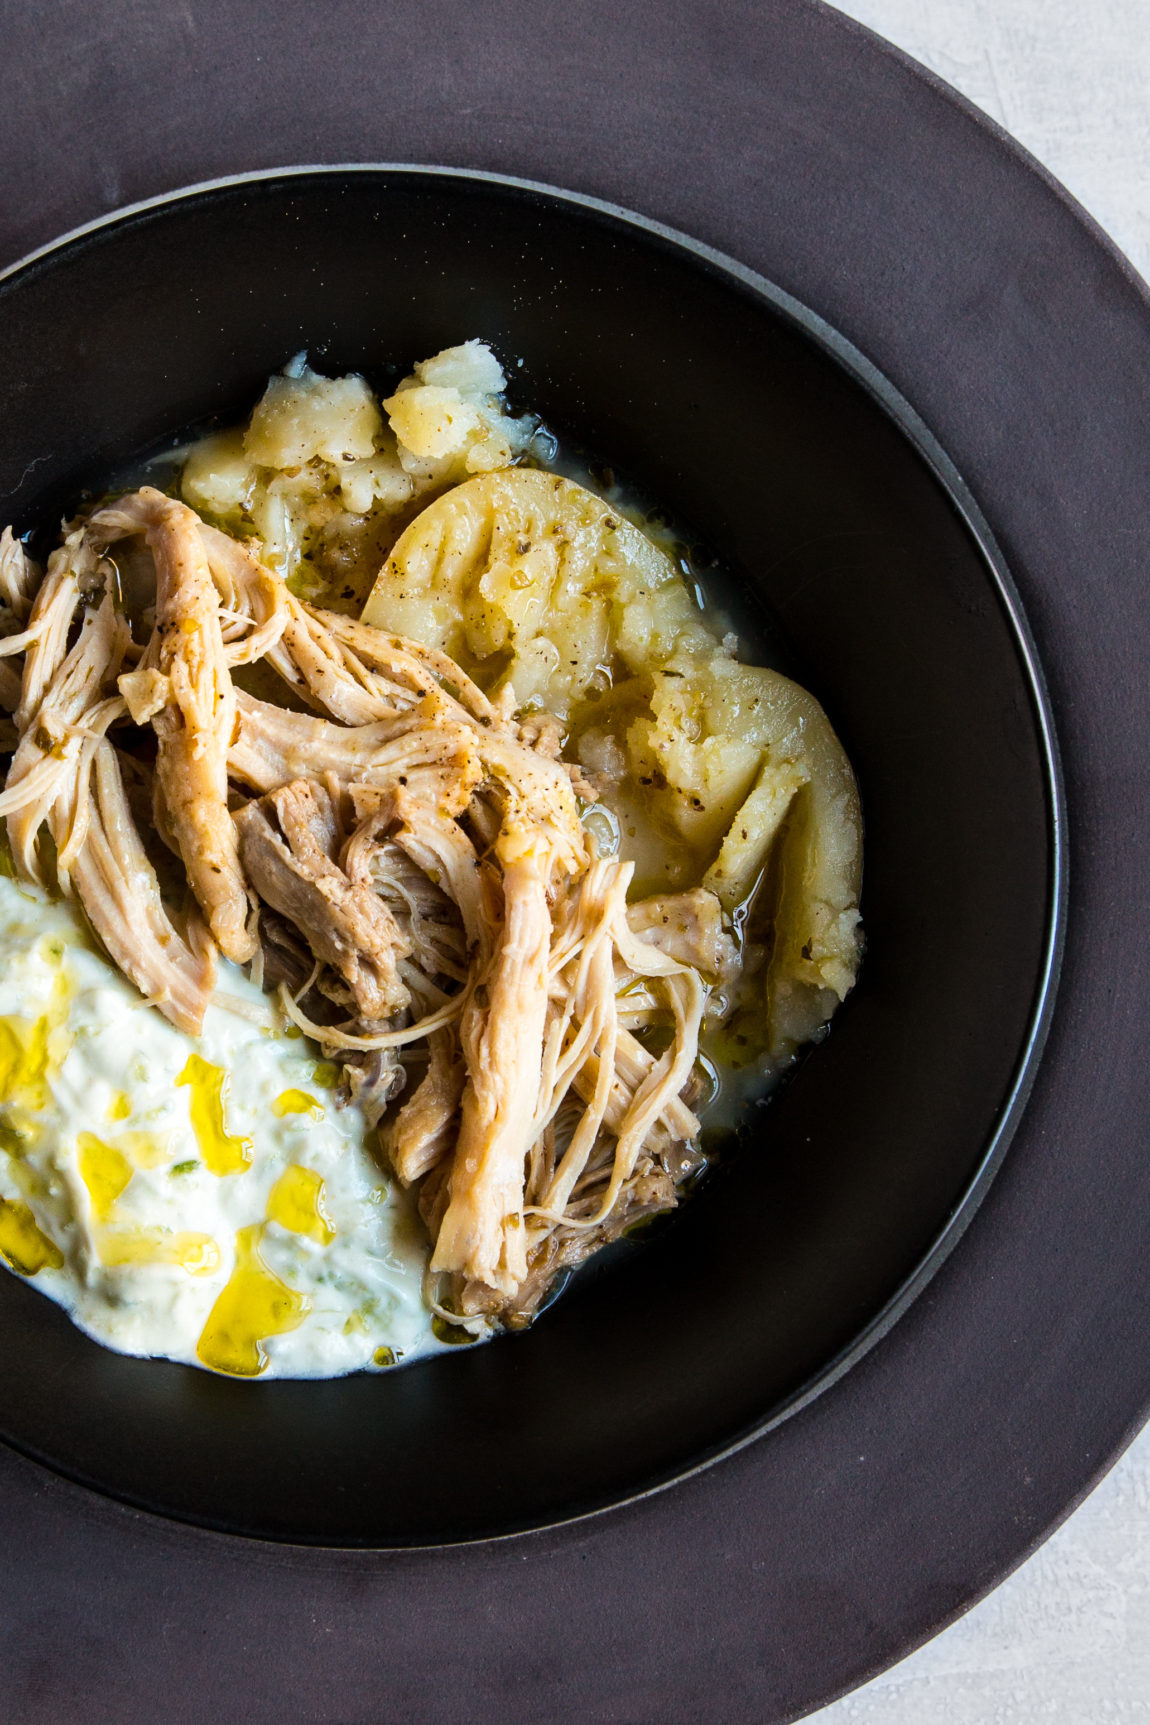 Easy Chicken and Potatoes recipe for Instant Pot or pressure cooker